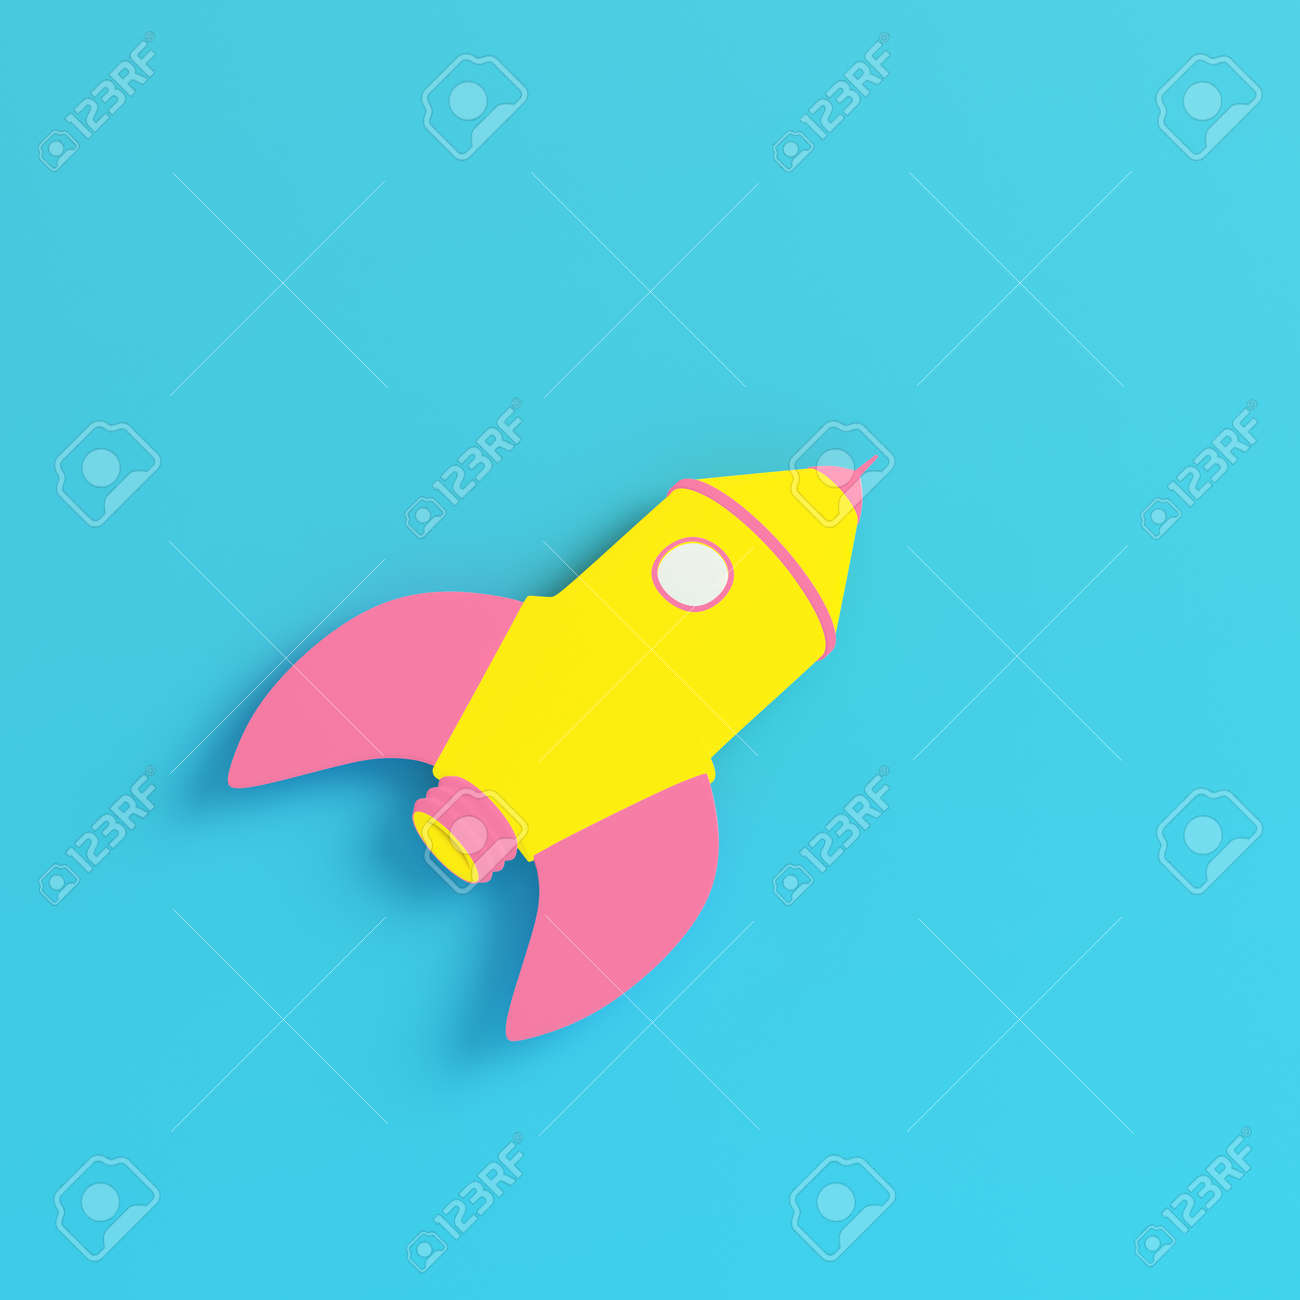 Pink cartoon styled rocket on bright blue background in pastel colors. Minimalism concept. 3d render - 172726073